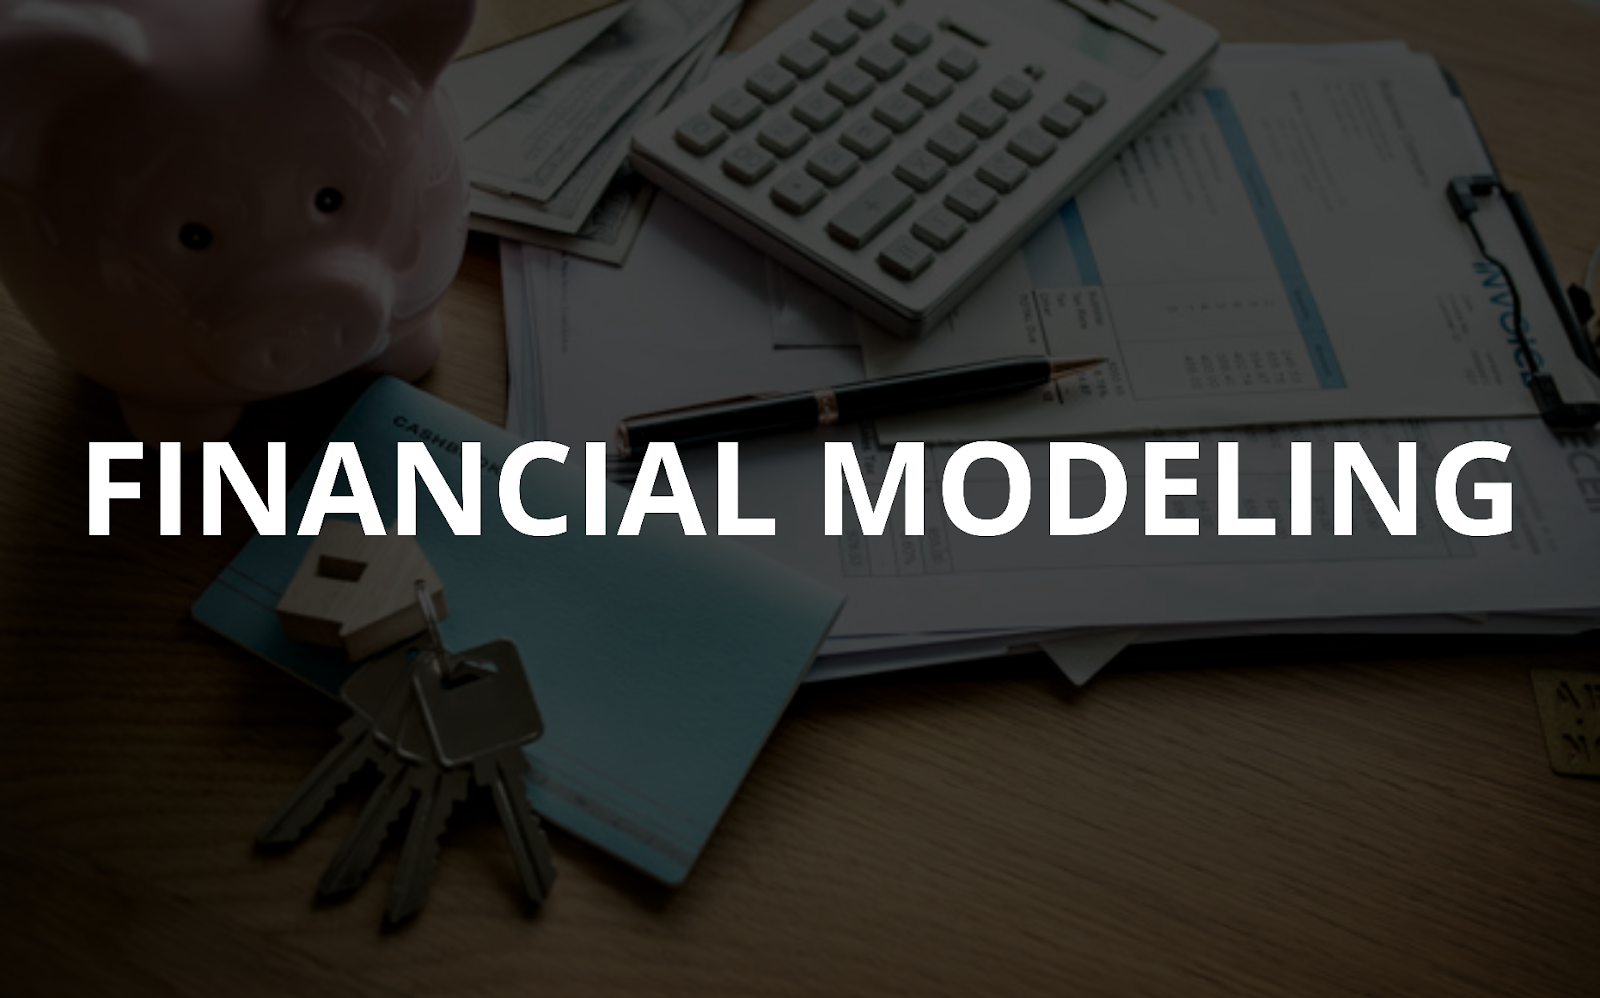 What Does Financial Modeling for Startups Look Like?